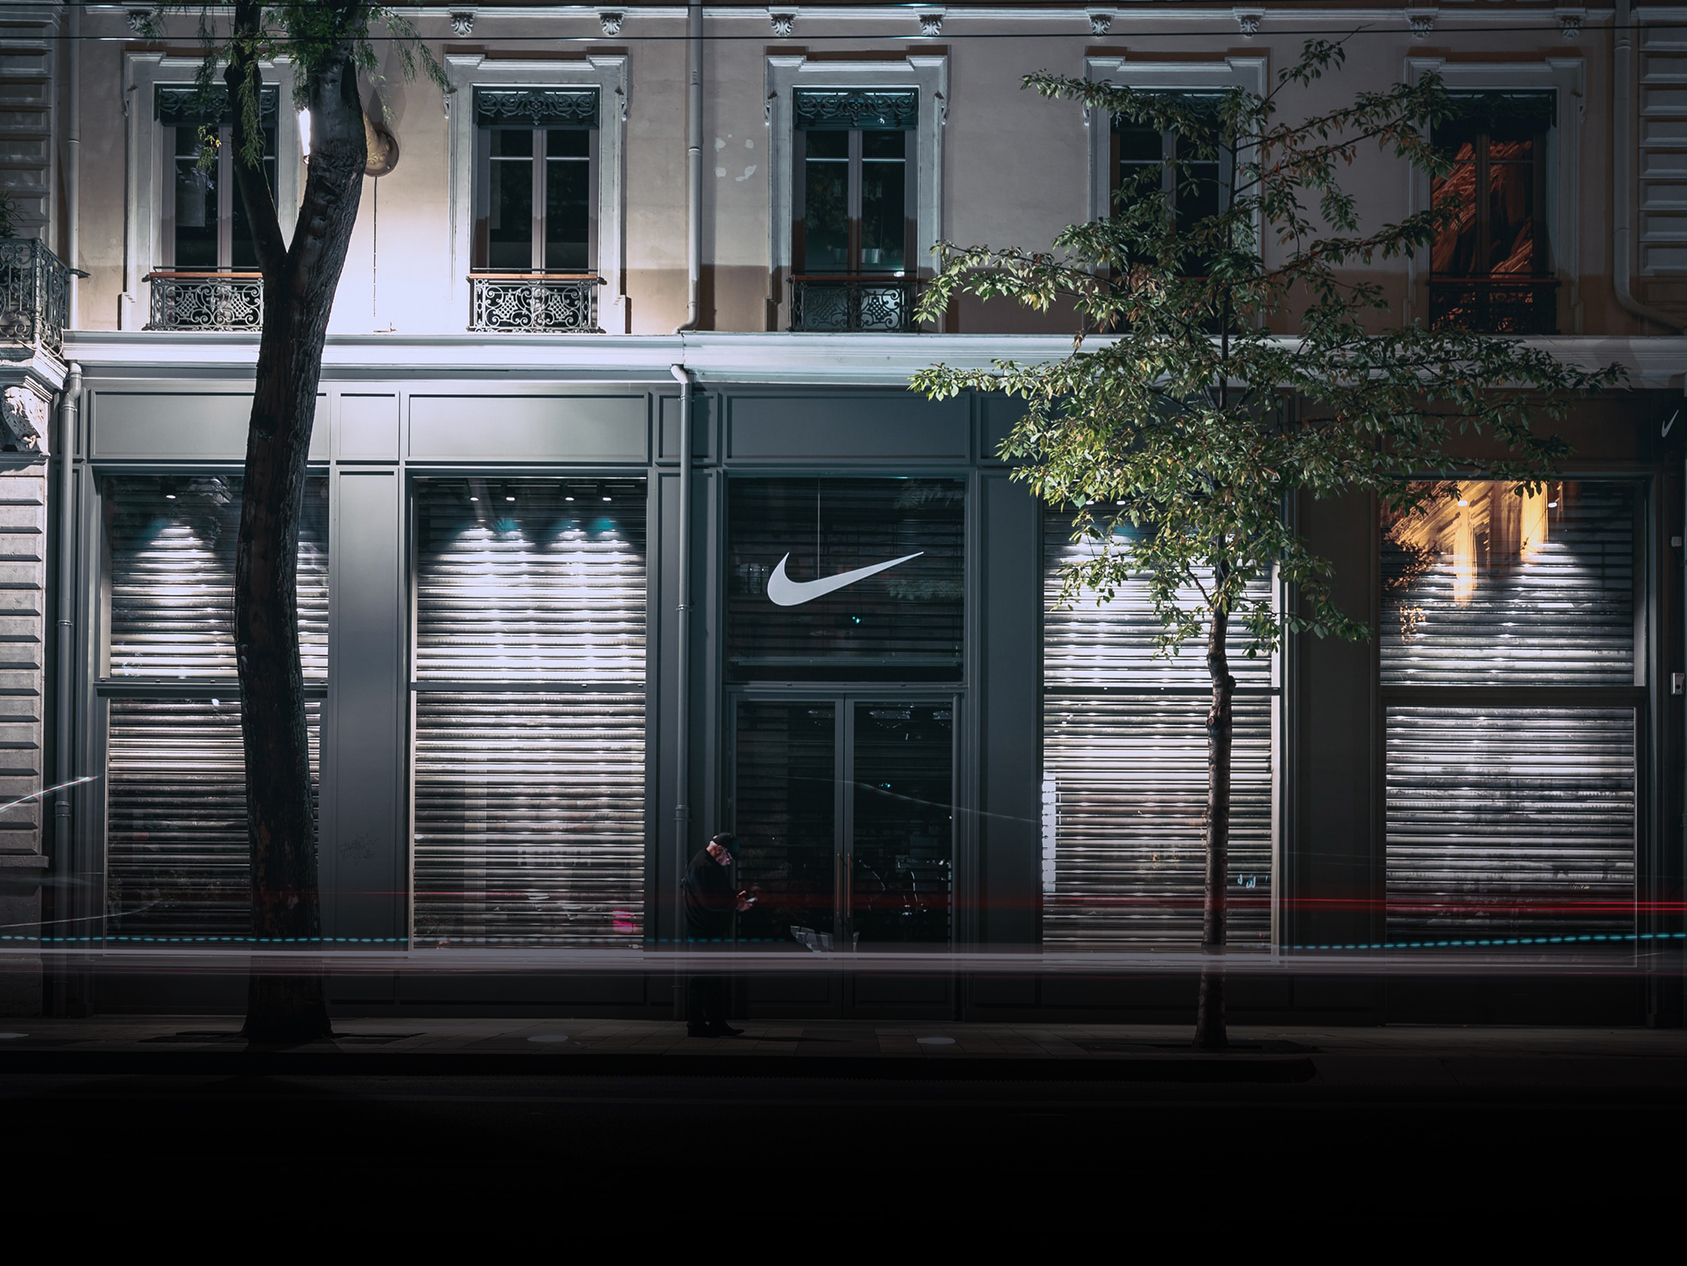 Nike, Urban Outfitters and Apple Amongst Retailers Shutting Their Stores Due To Coronavirus